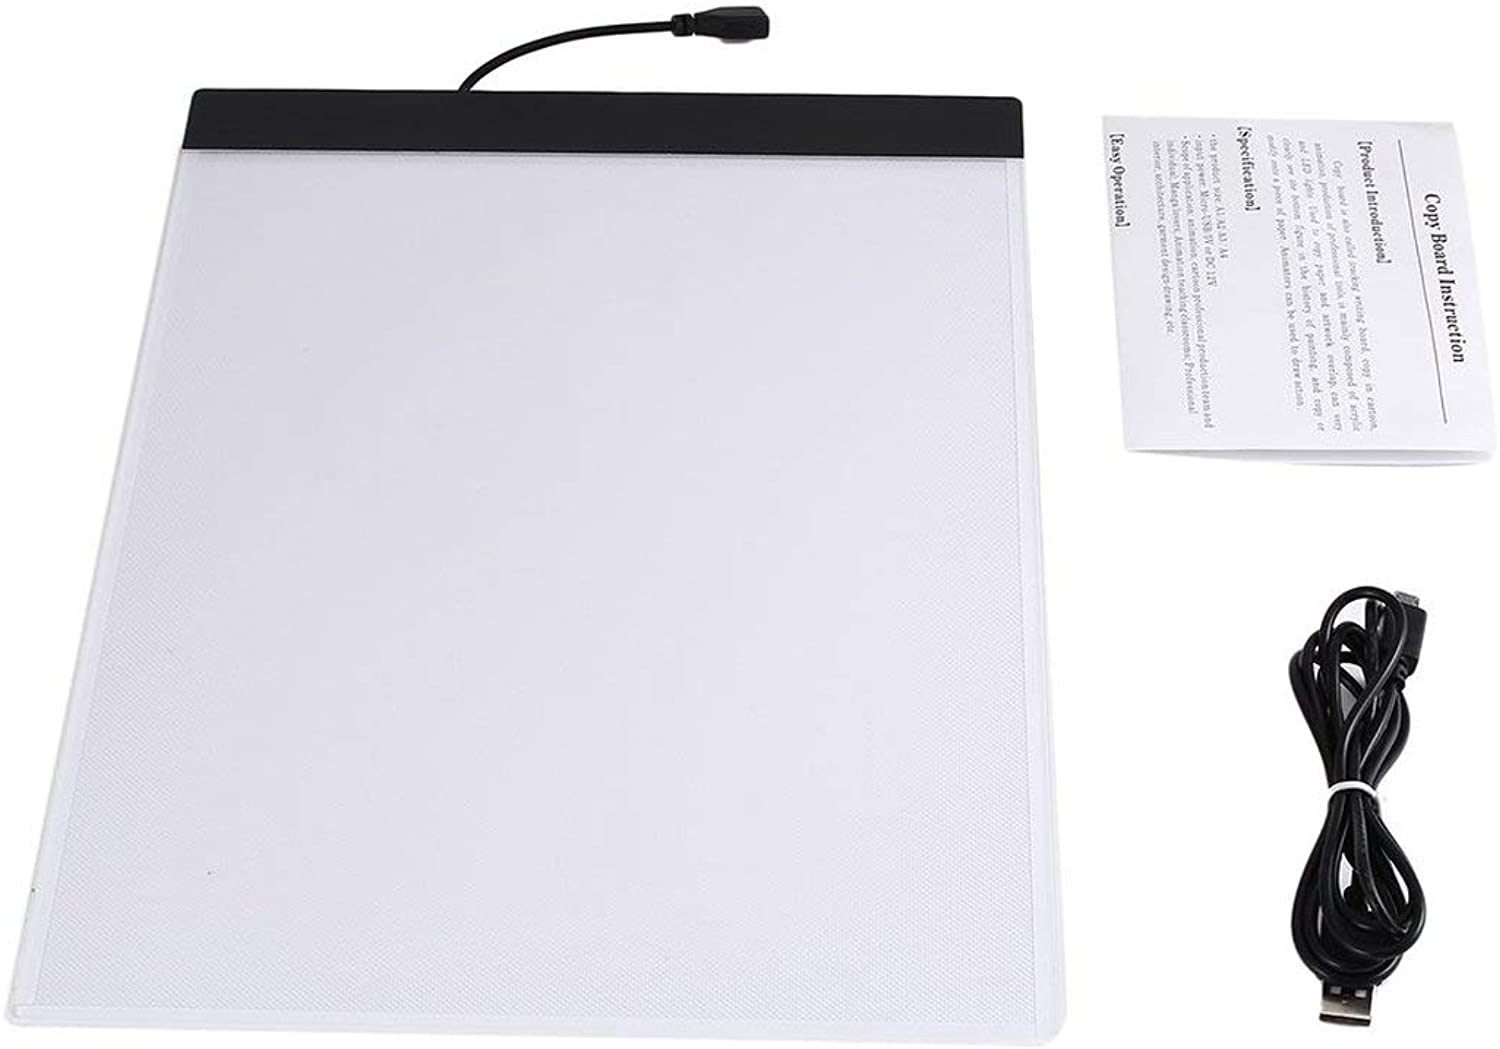 K02 A4 Paper Size Copying Board Ultra Thin LED Luminous Painting Sketch Pad USB Portable Art Tracking Writing Light Panel